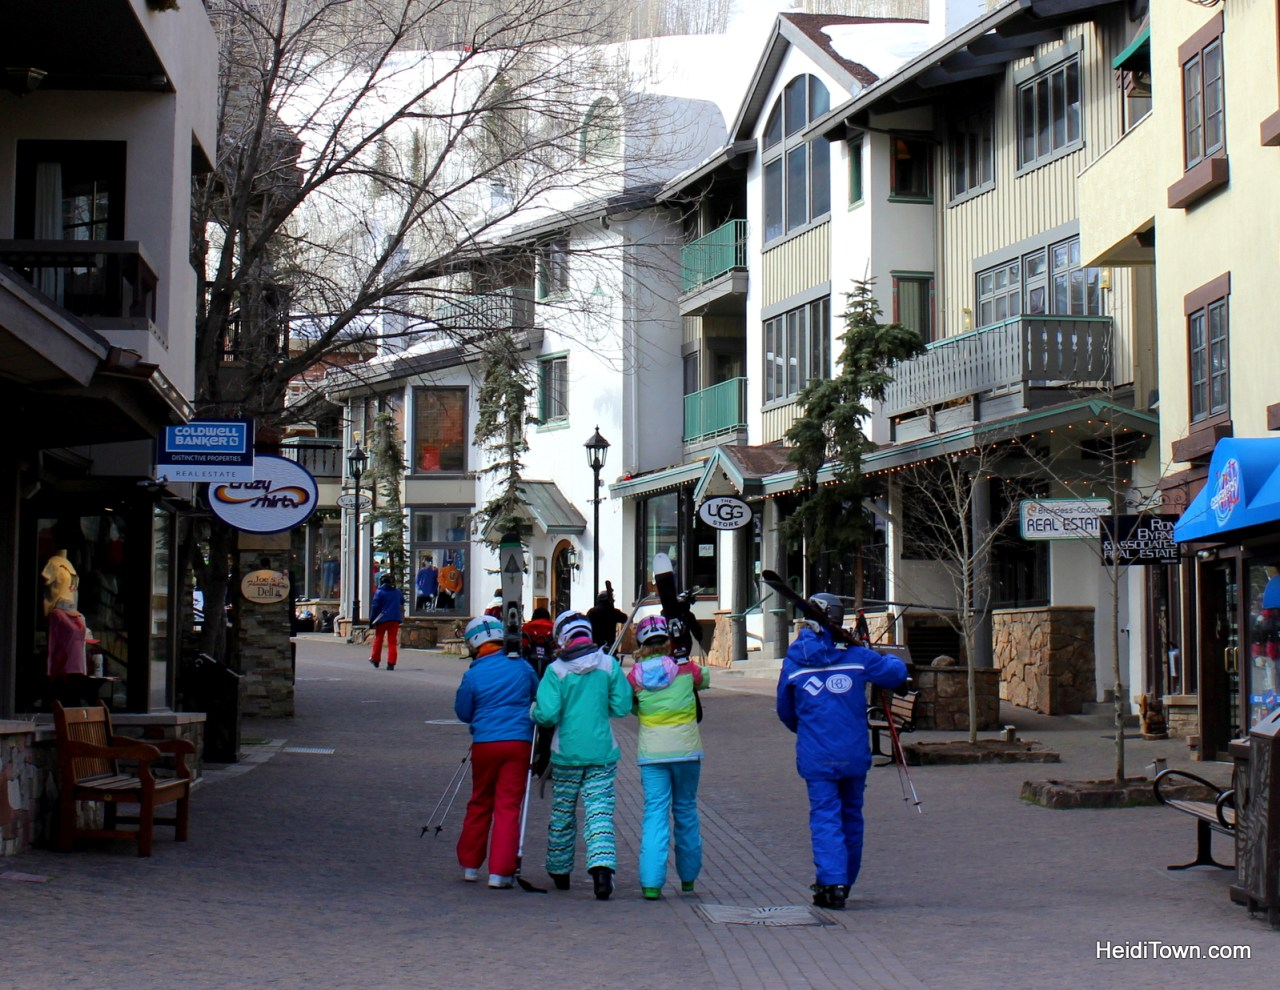 Skiers carry skis through Vail Village in Vail, Colorado. HeidiTown.com